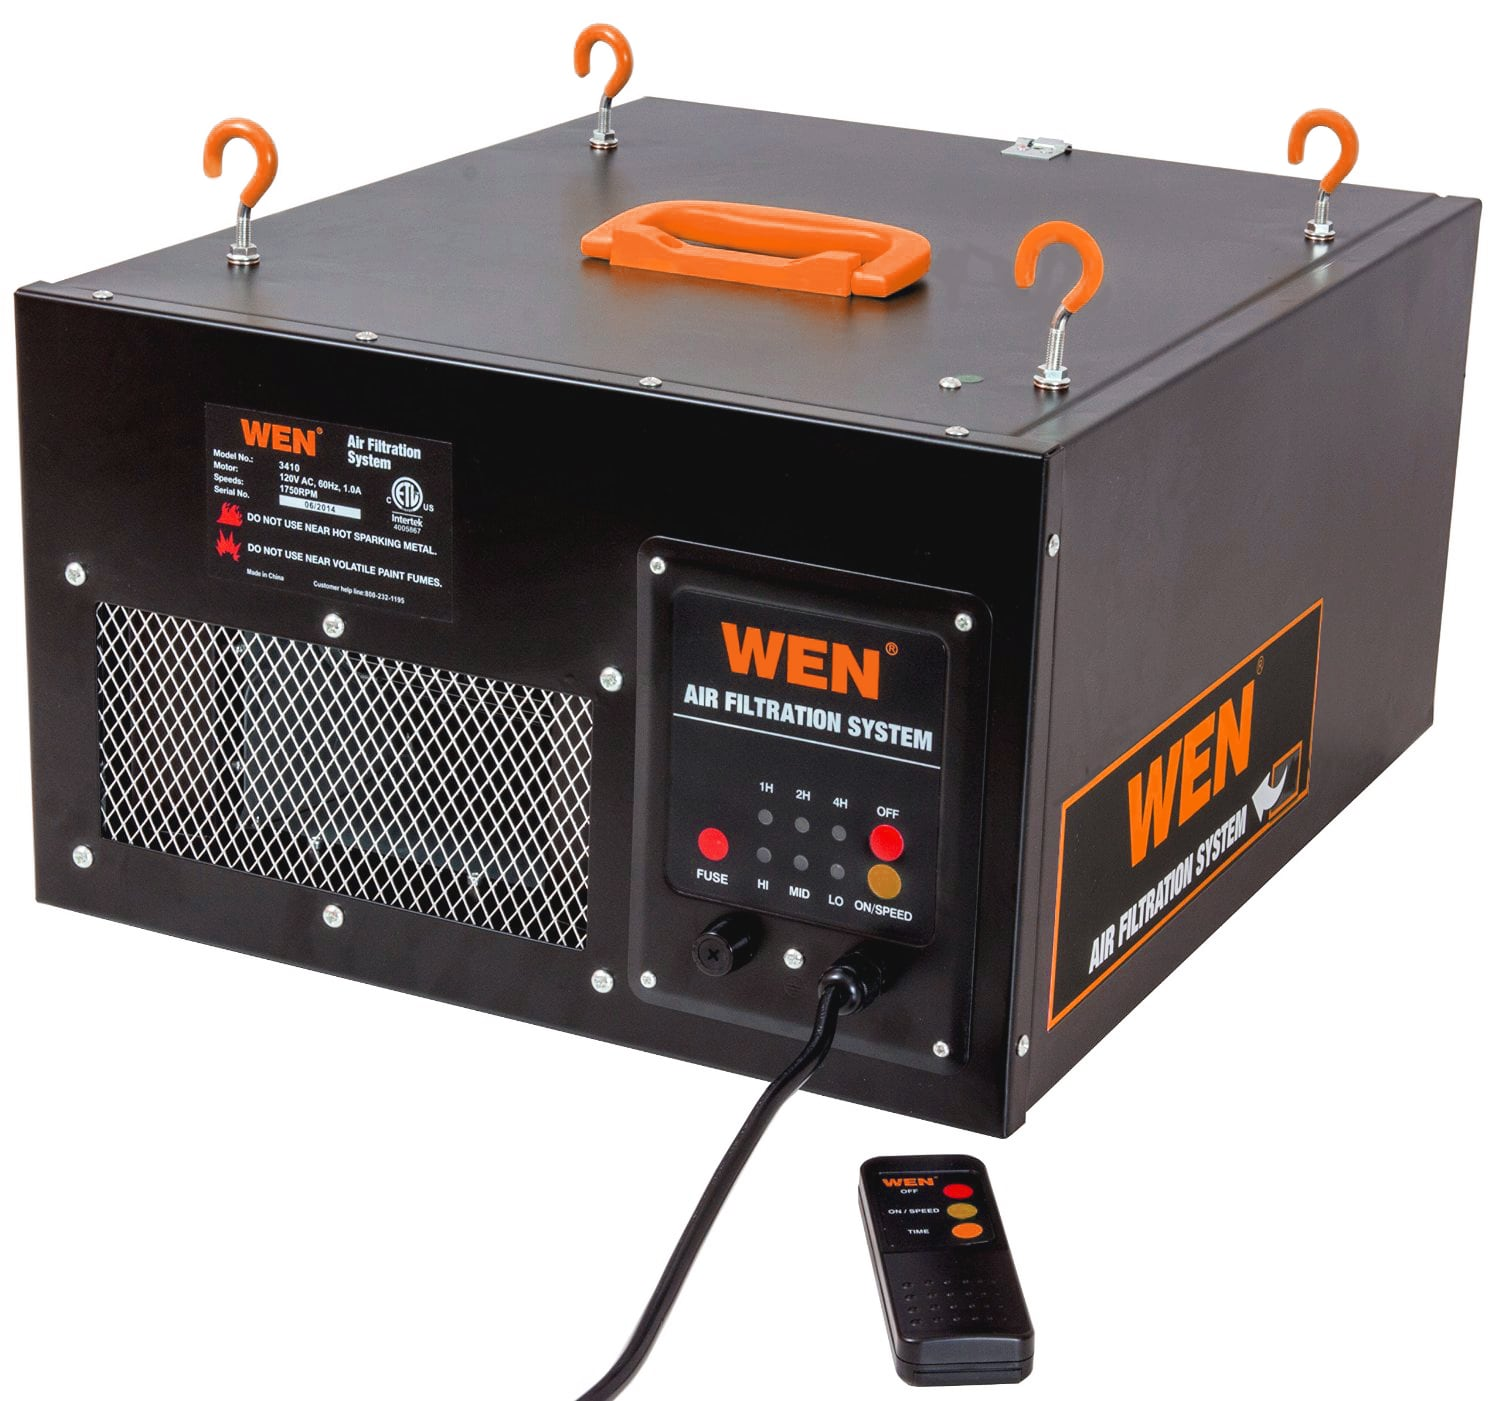 WEN 3410 3-Speed Remote-Controlled Air Filtration System $132.1